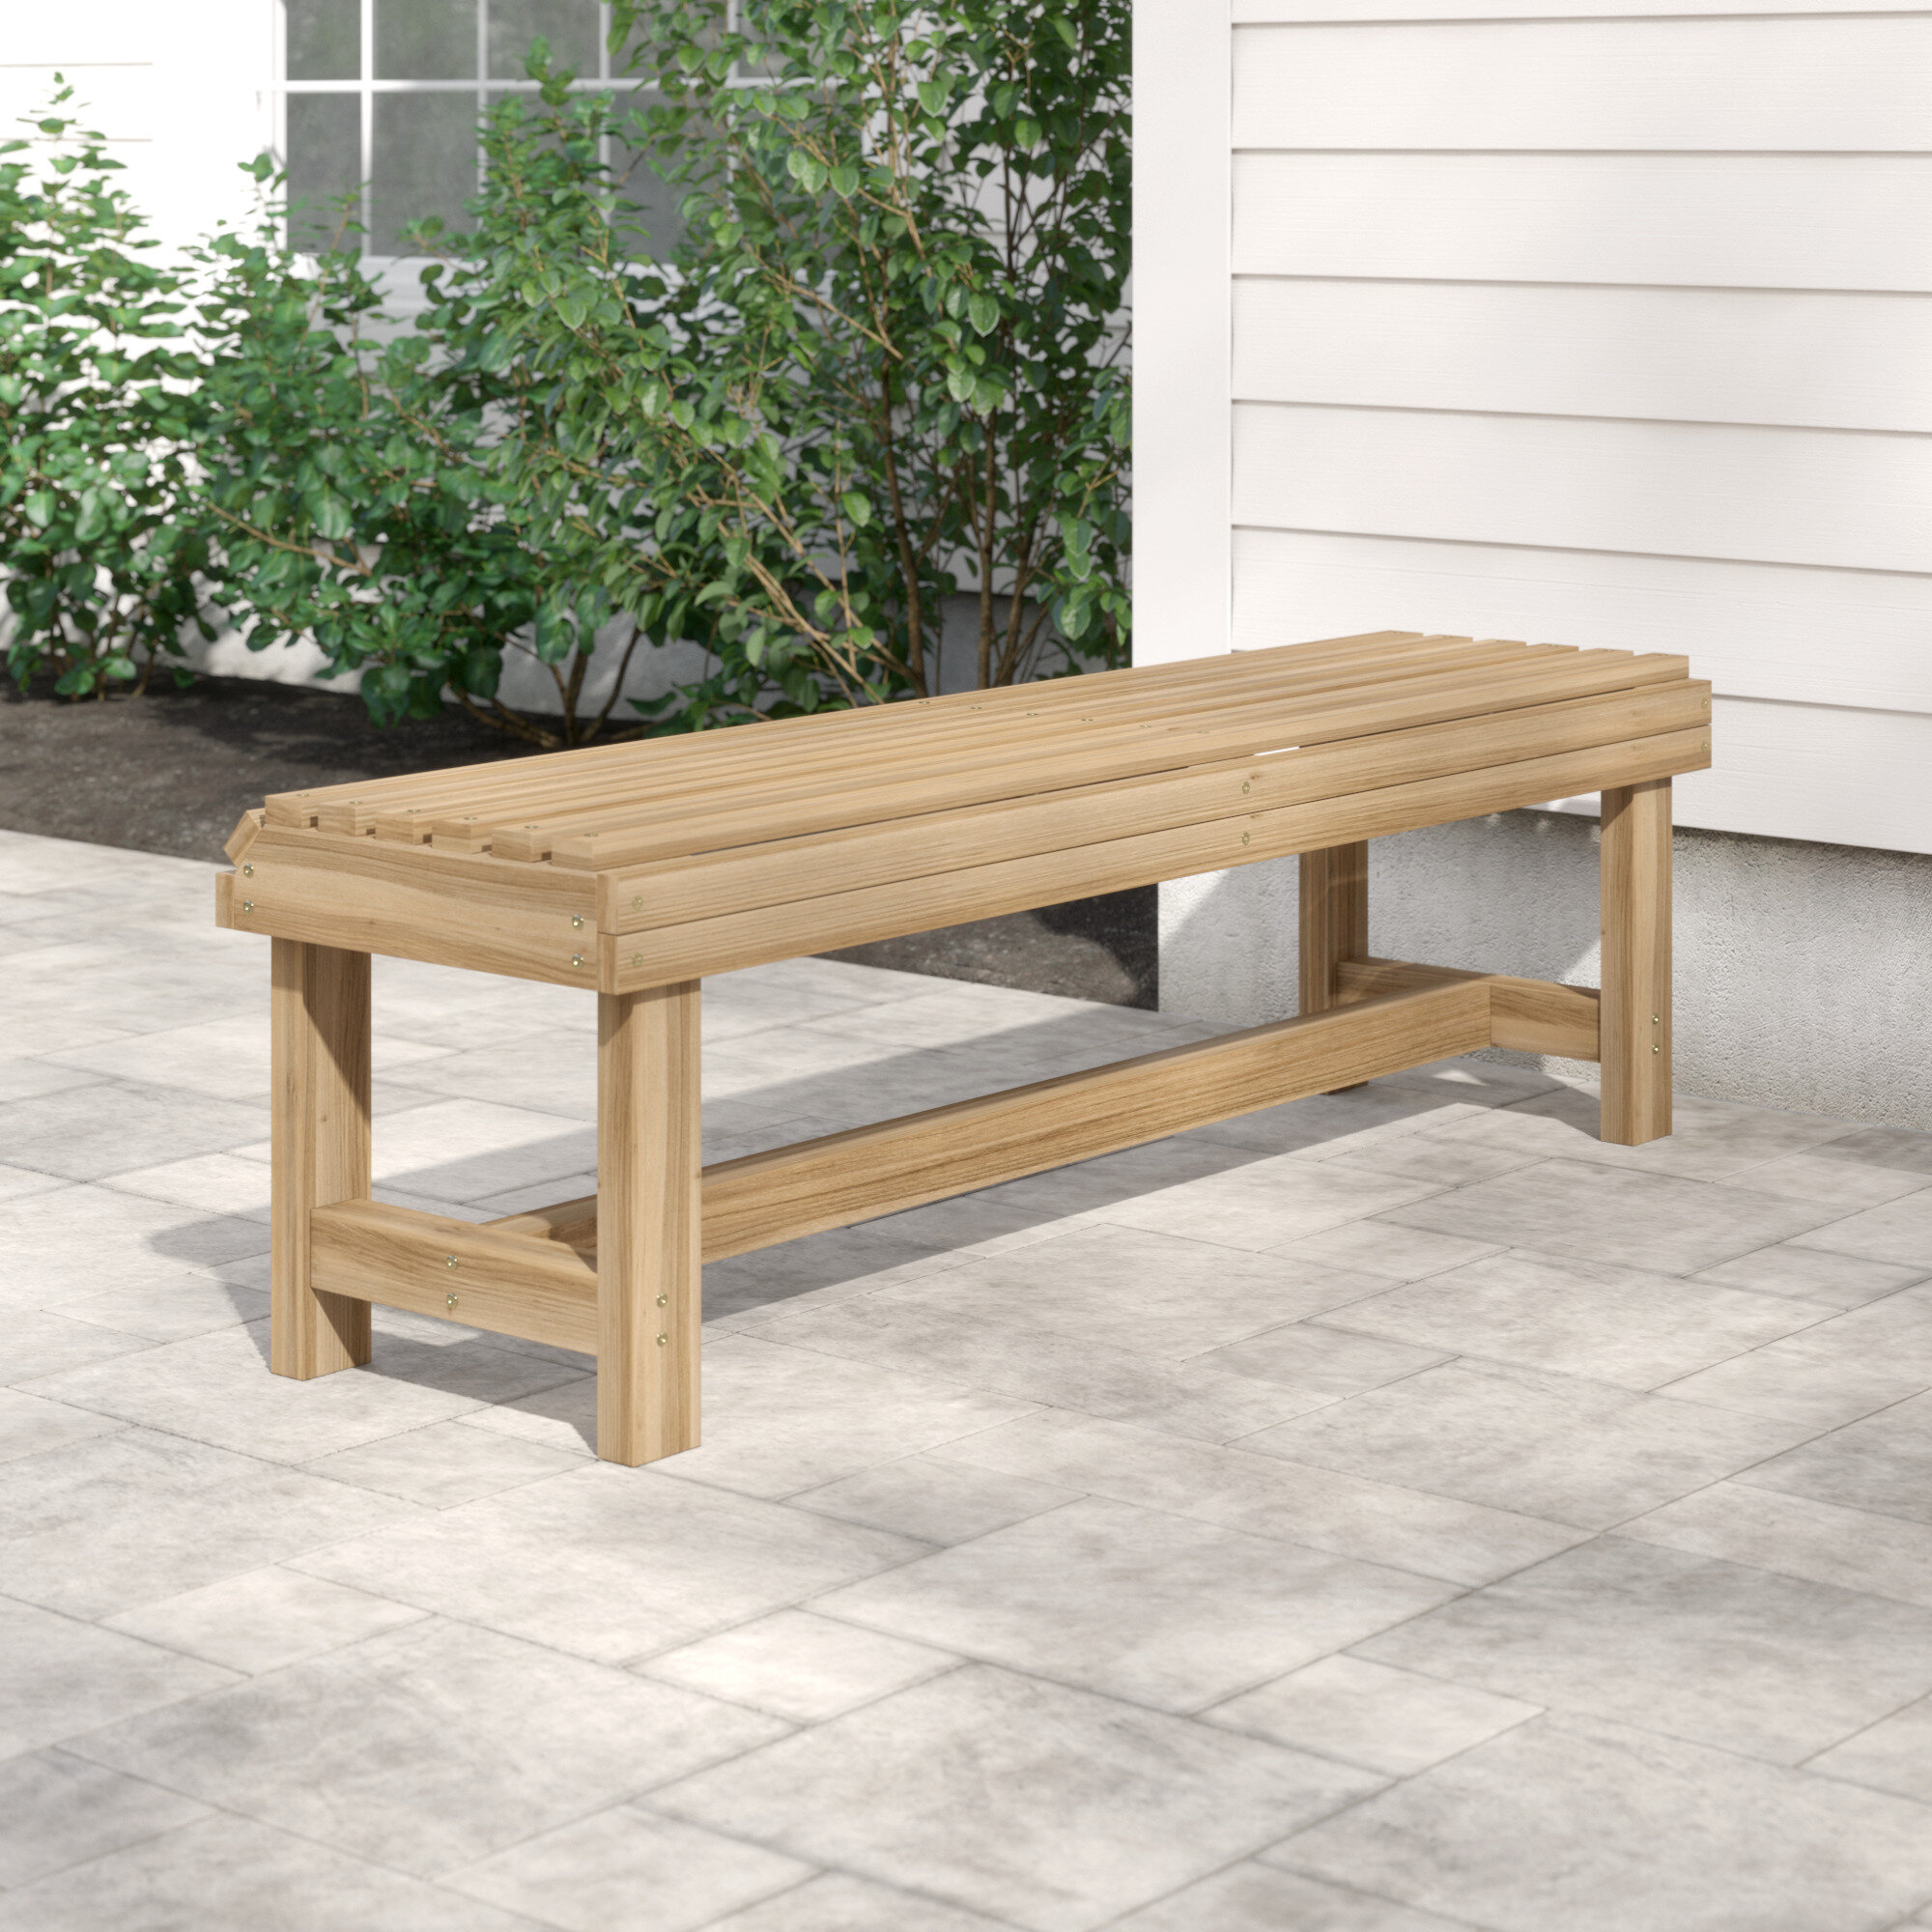 Sol 72 Outdoor Carrabelle Wooden Bench Reviews Wayfair Co Uk